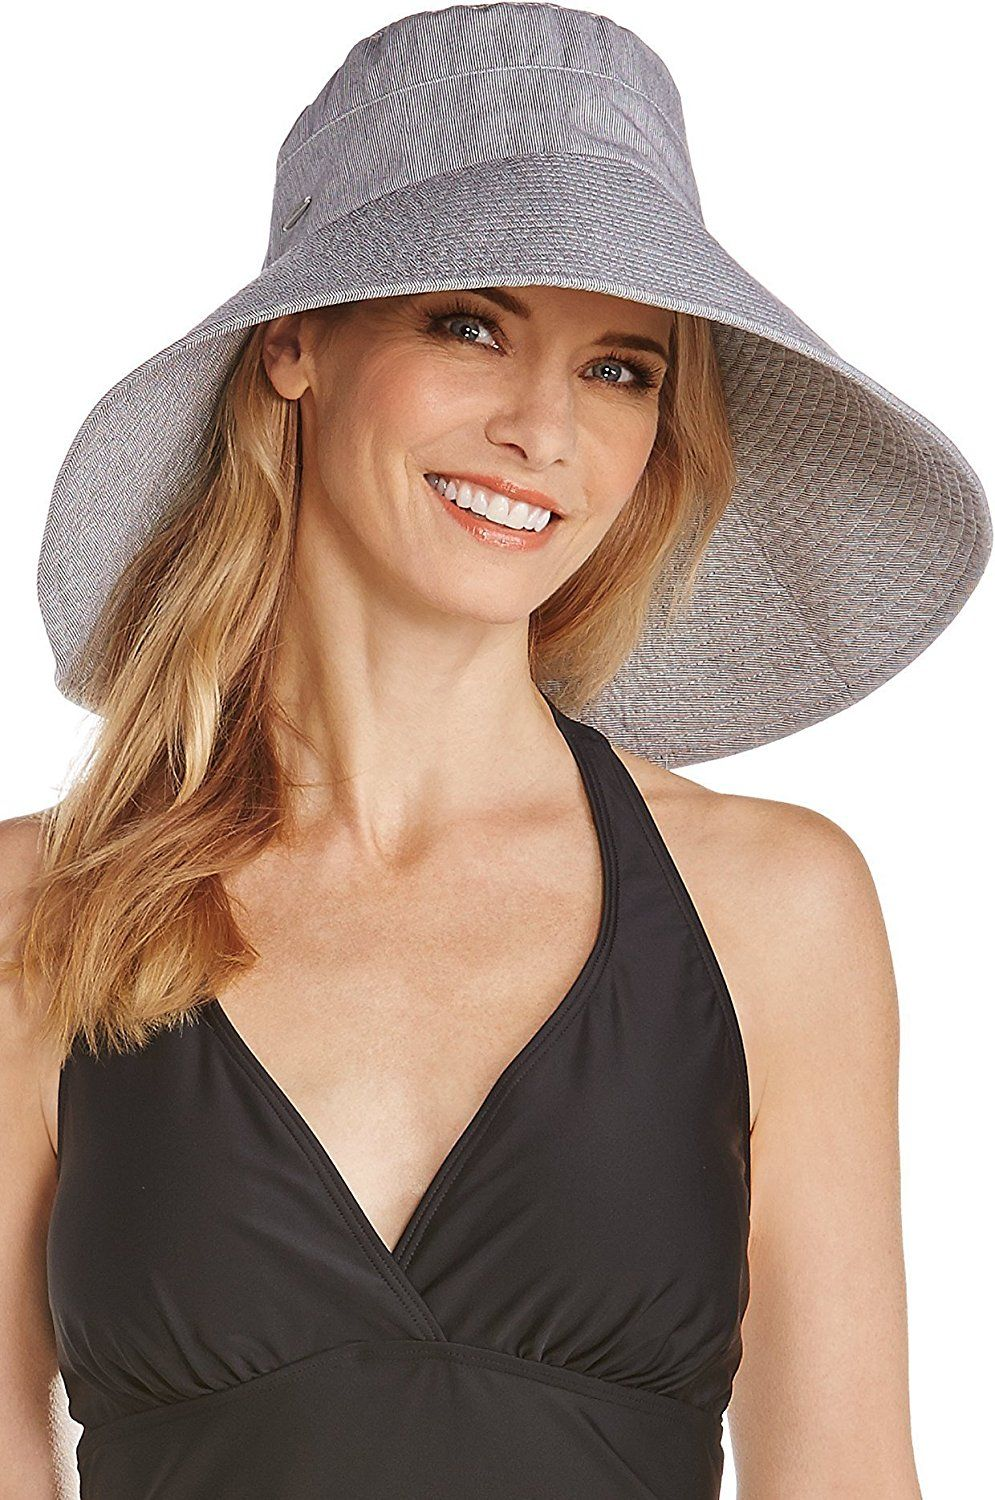 5b10555ef00 Coolibar UPF 50 Women s Beach Hat - Sun Protective    For more information